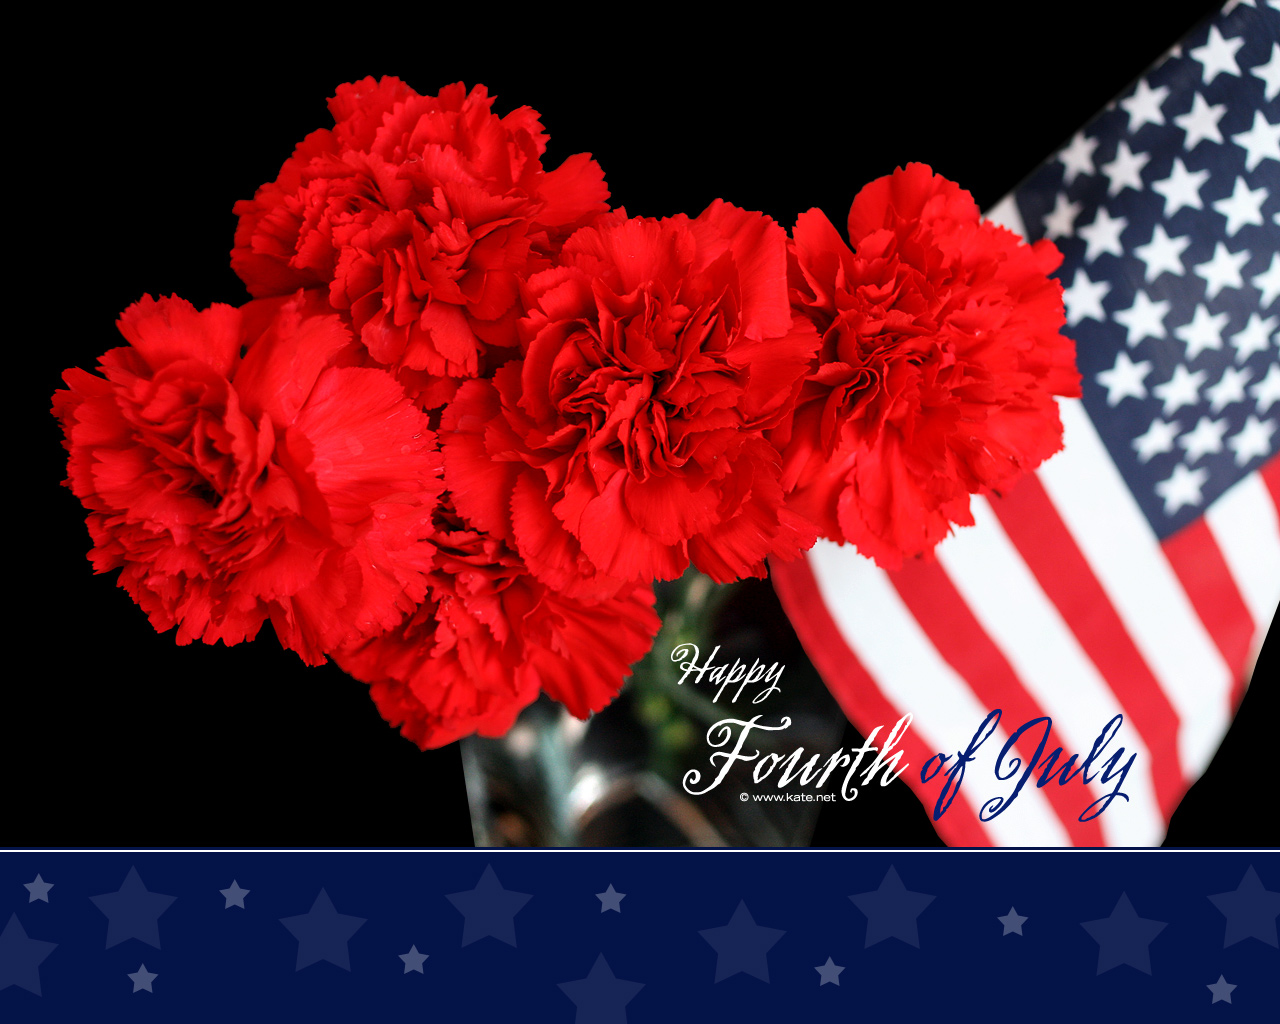 http://3.bp.blogspot.com/_-ej2nIqR7_A/TCYtB-Br8NI/AAAAAAAACI8/v3FeT4LgIXk/s1600/Fourth_of_July_Carnation_Flowers_and_Flag_Wallpaper.jpg